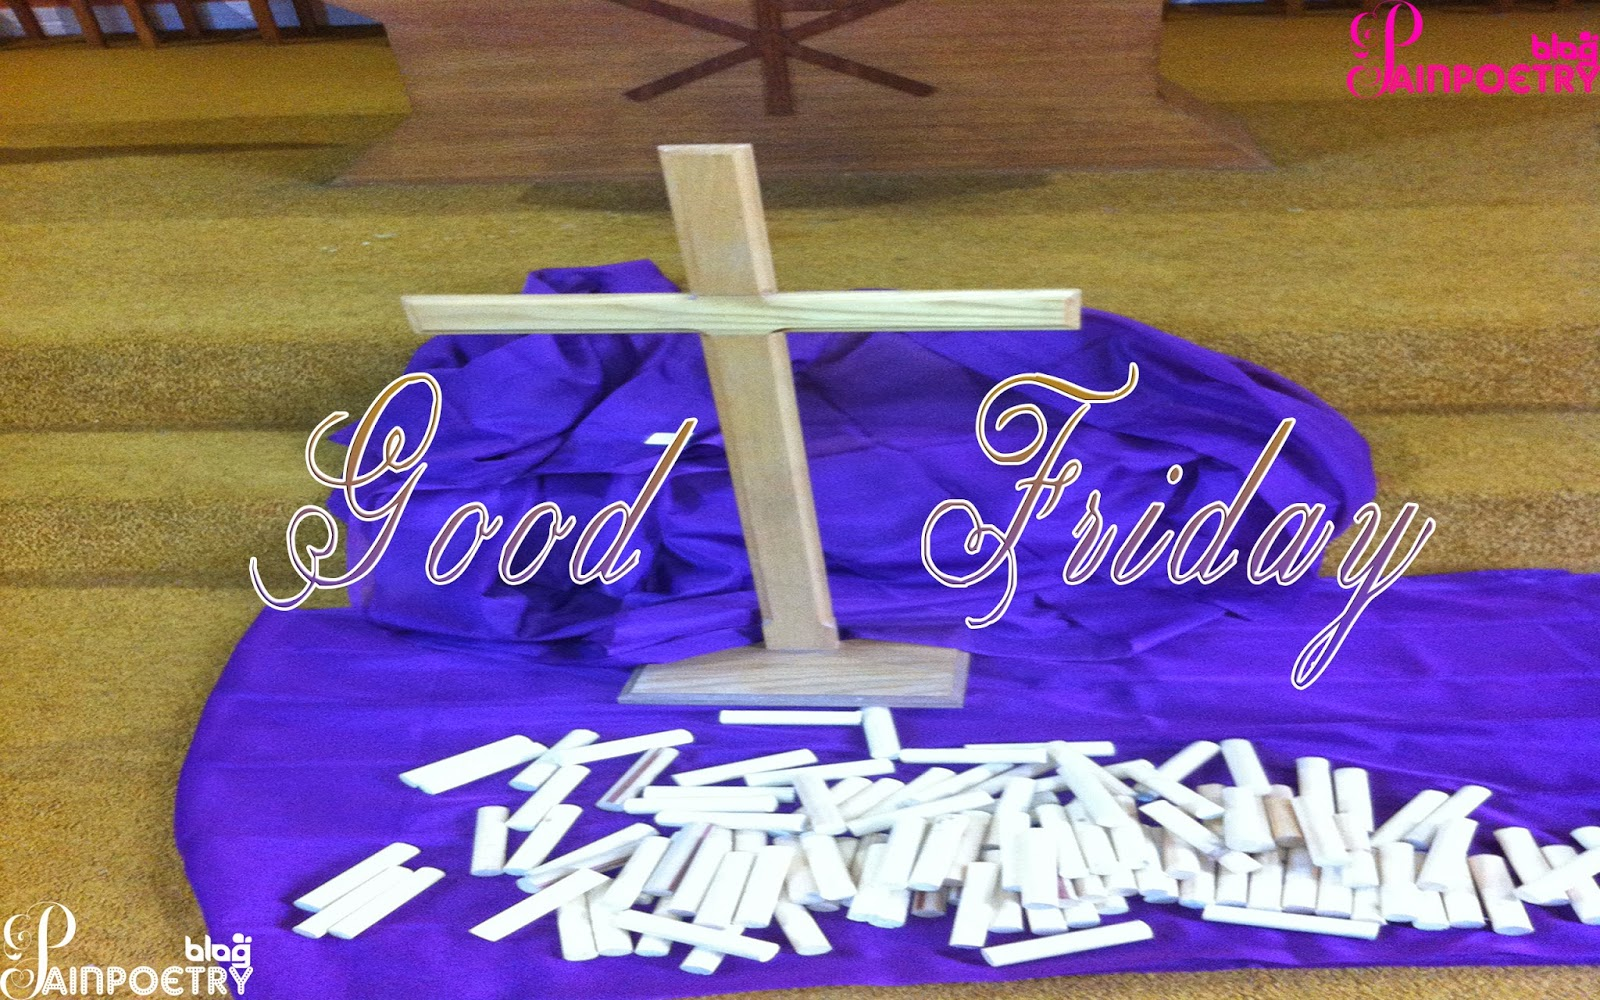 Good-Friday-Cranny-One-Cross-Image-2014-HD-Wide